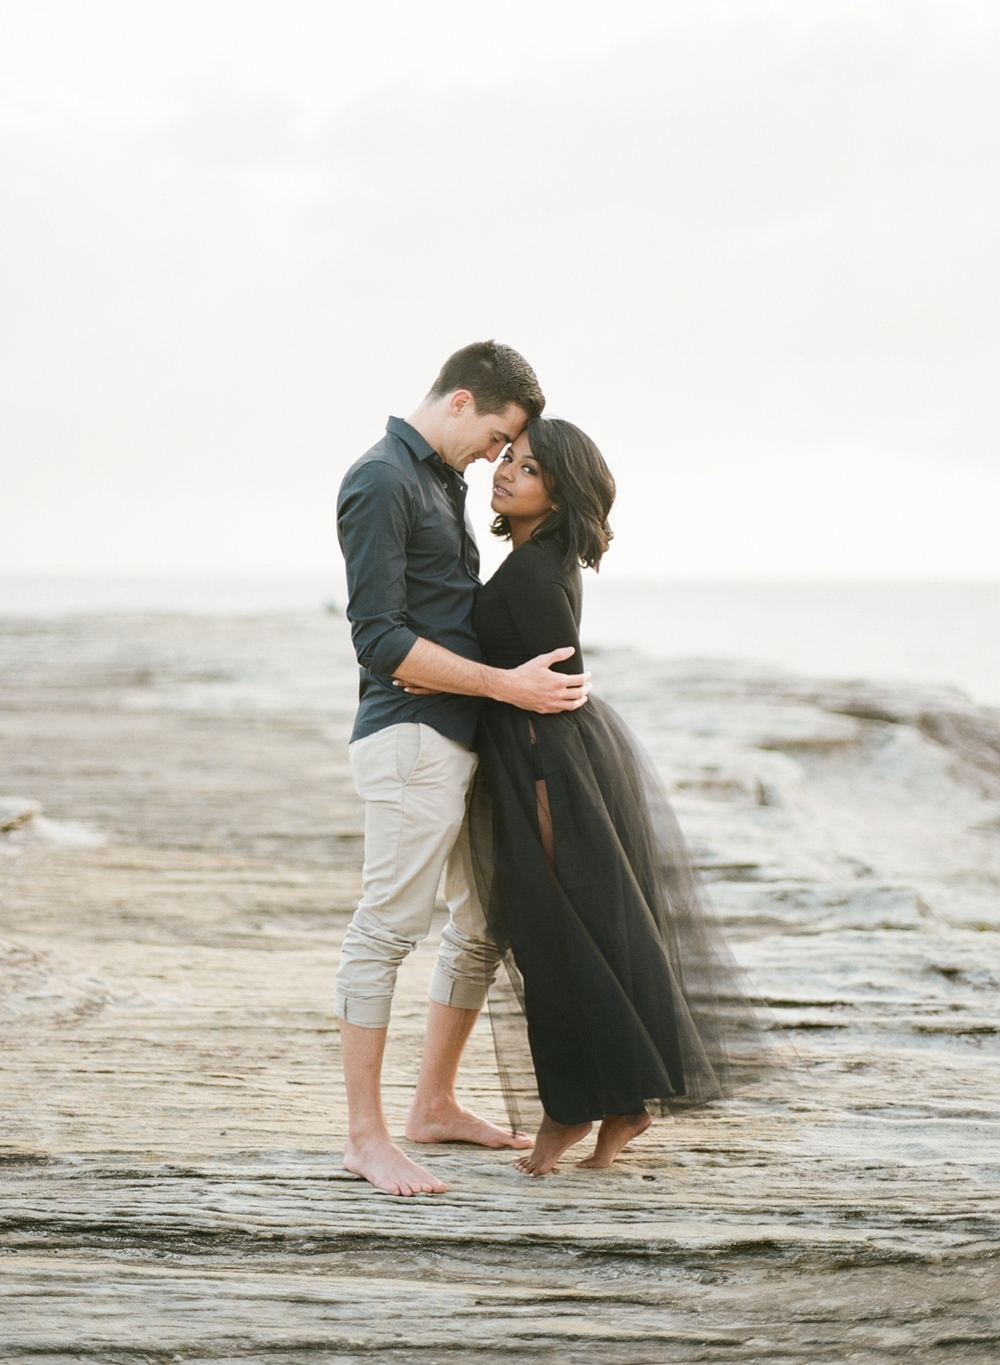 Coastal Sydney couples session by Mr Edwards Photography_0737_1149.jpg